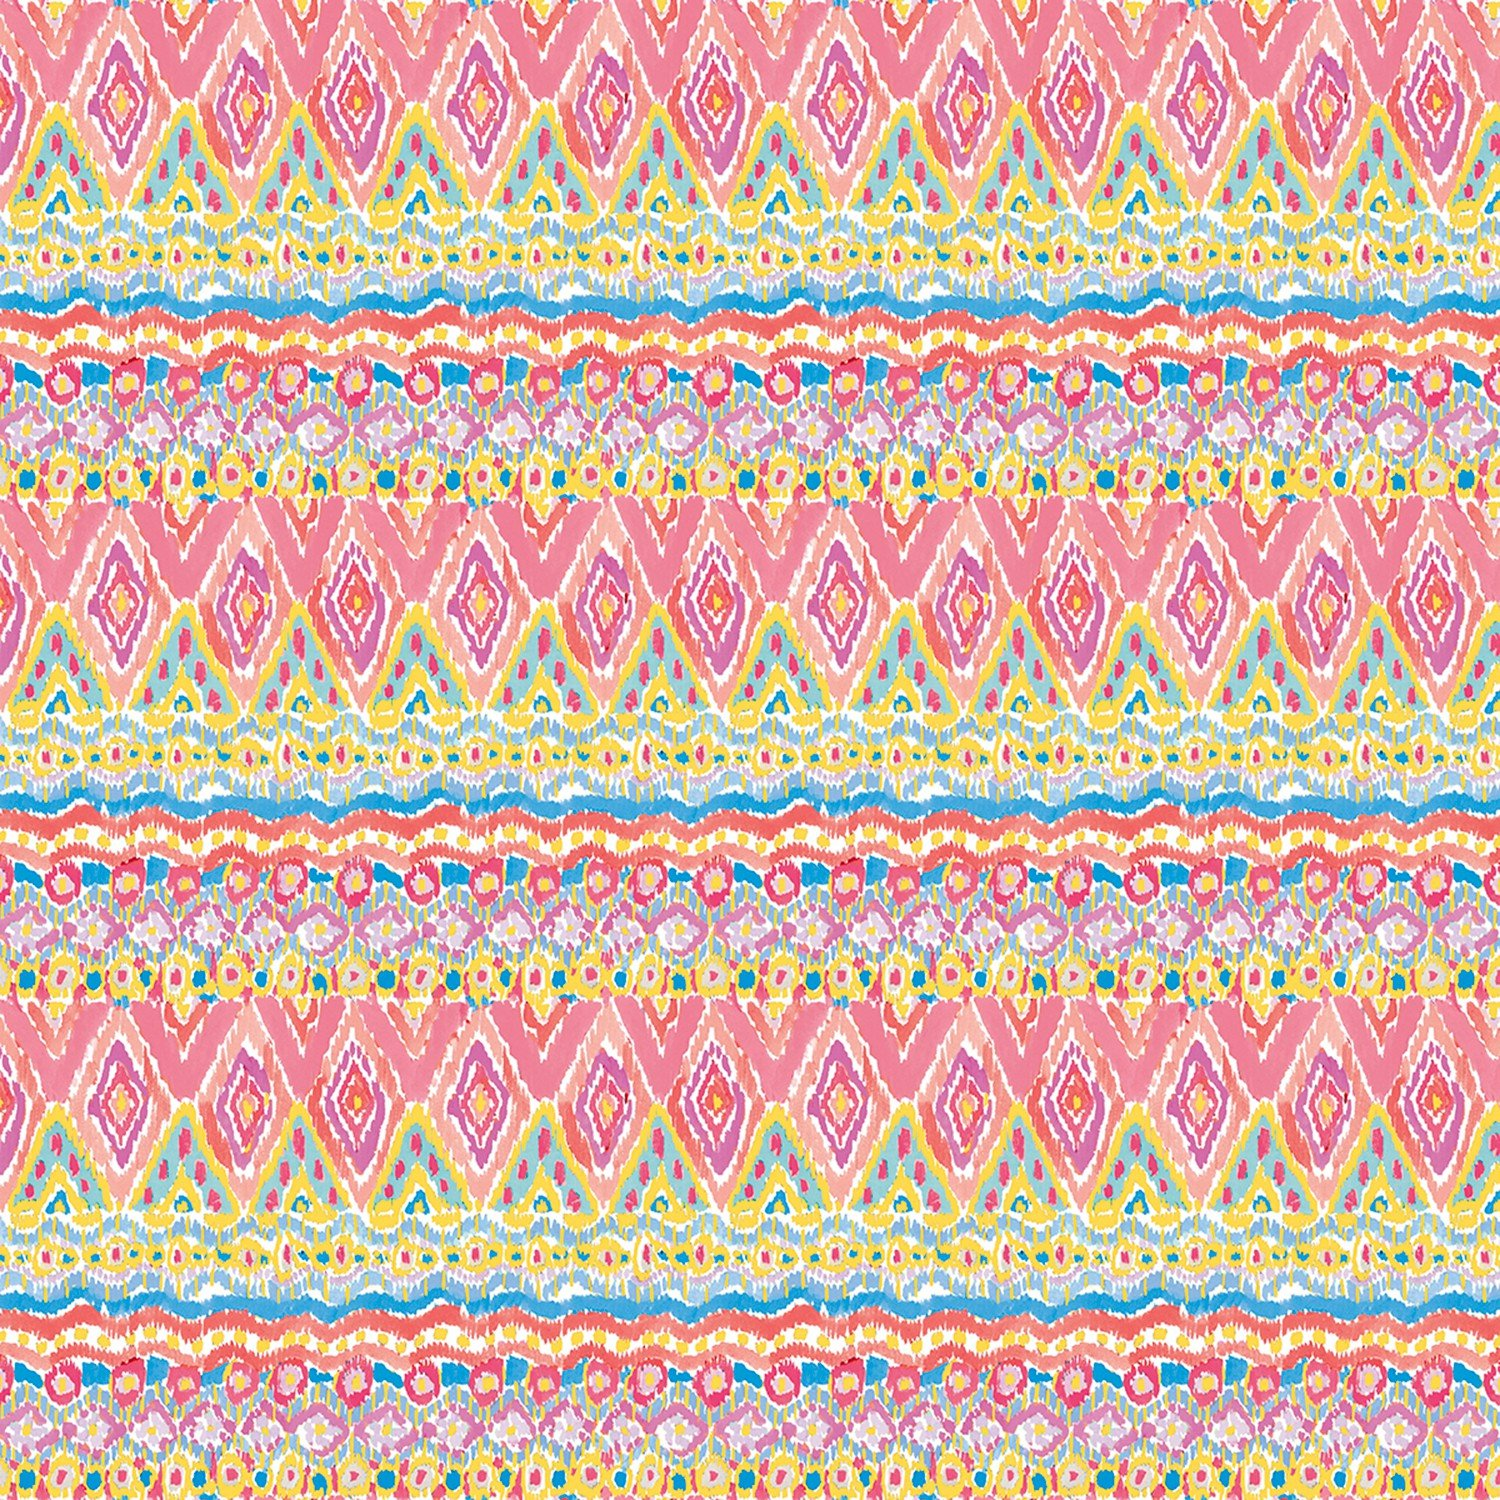 Zahara Stripe - Spring Fat Quarter Haute Zahara Collection by Free Spirit